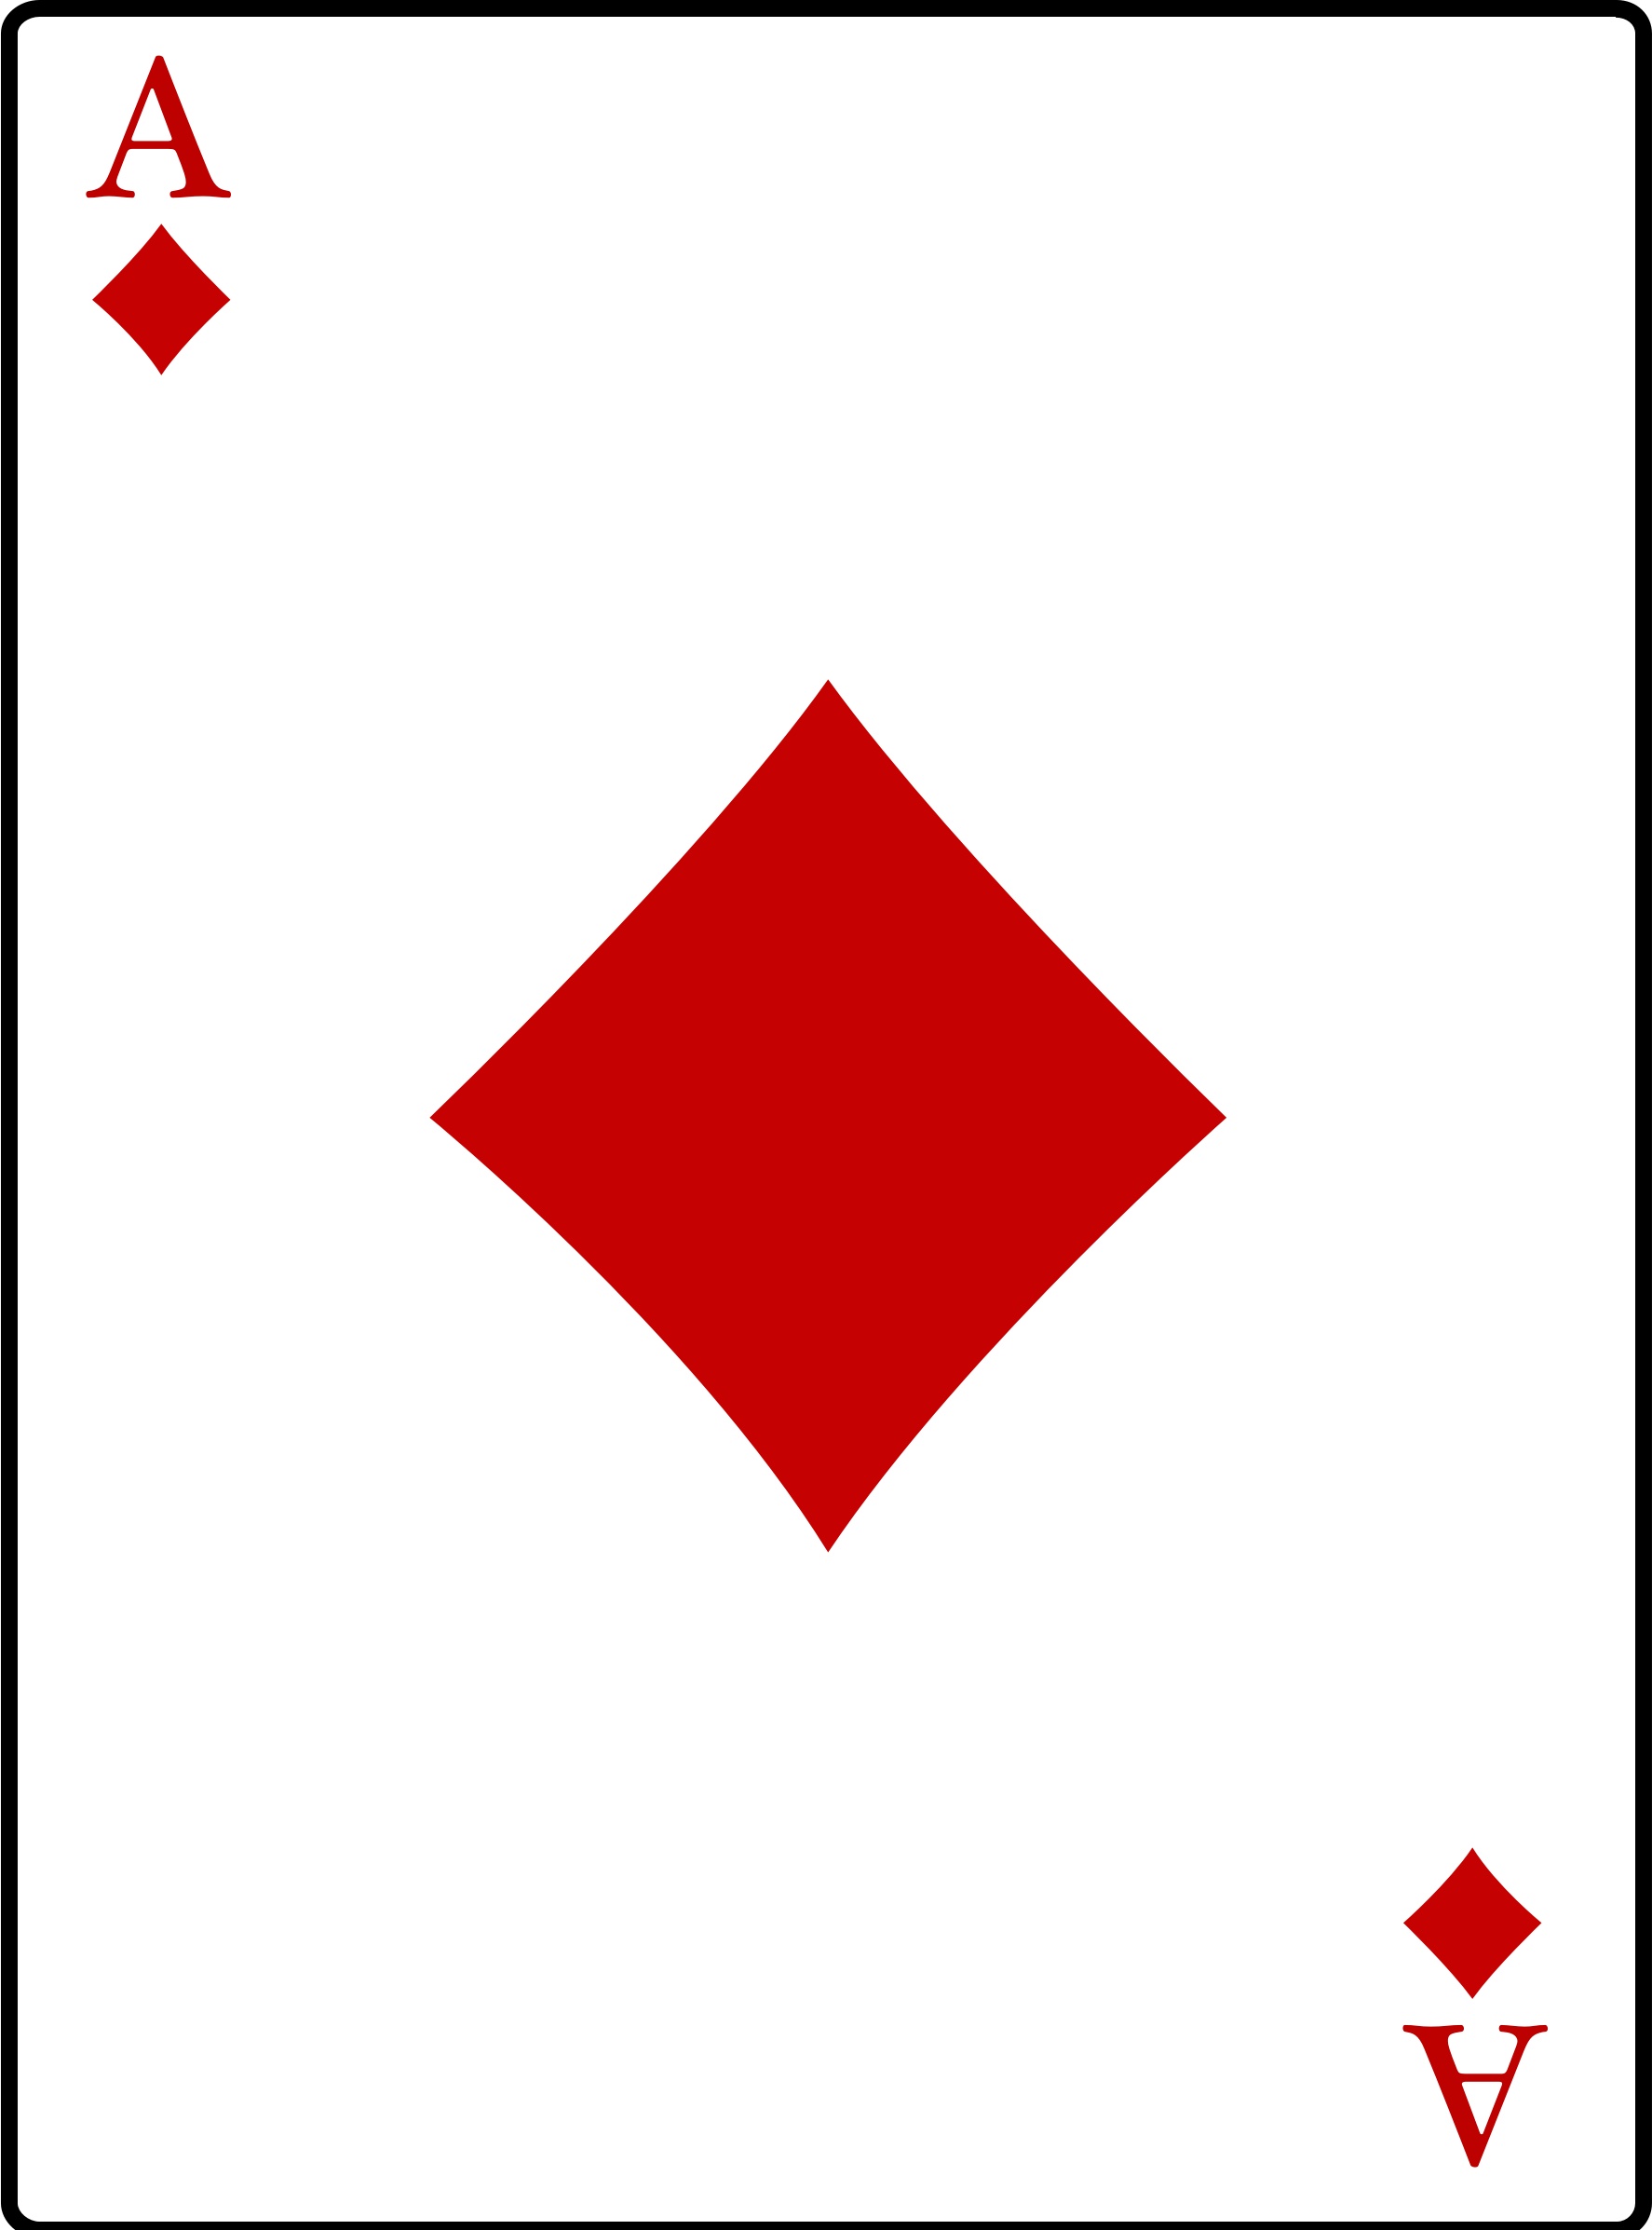 Ace of Diamonds by casino